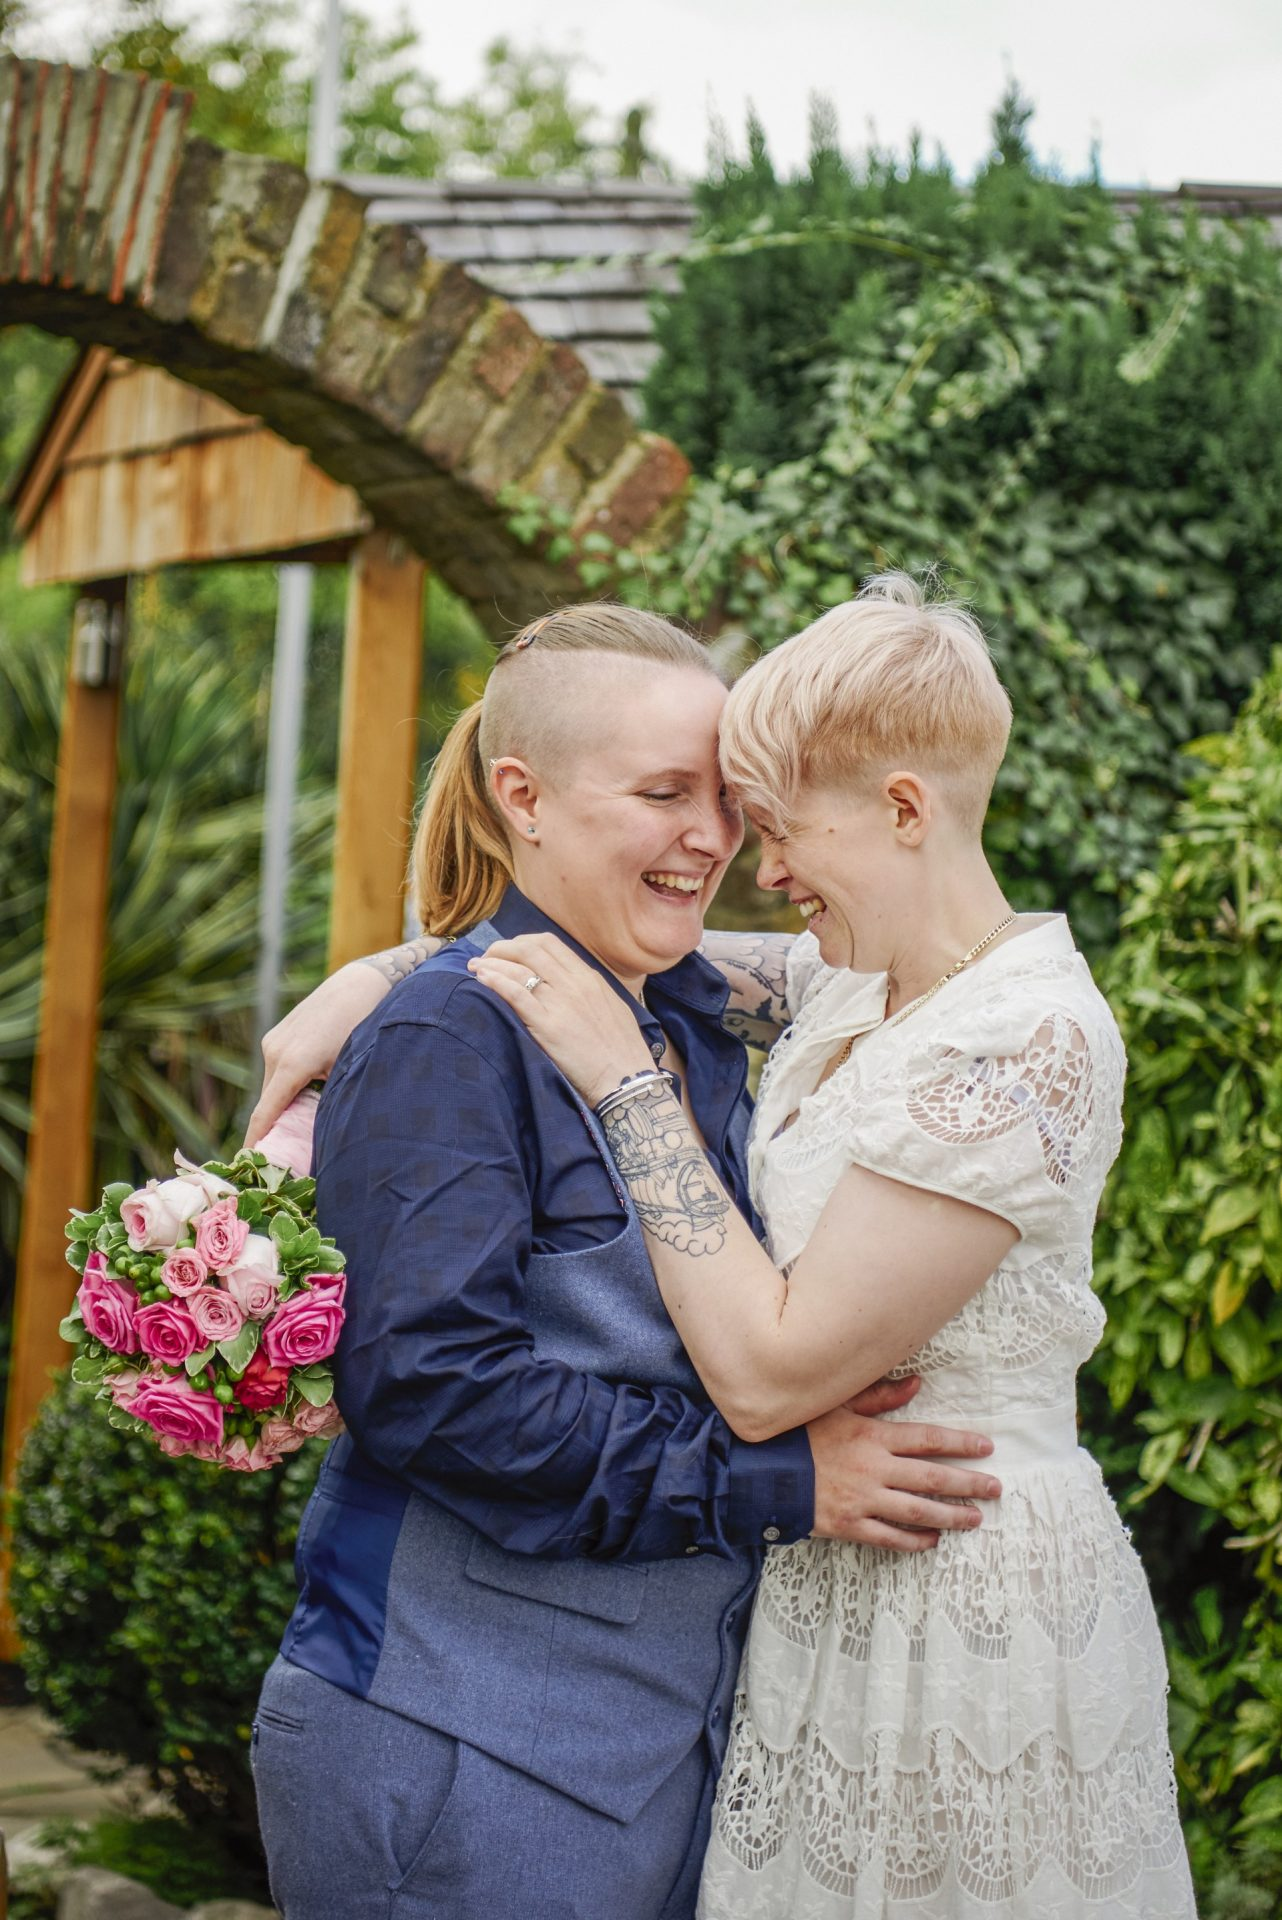 Lesbian brides laughing together on LGBT wedding day in front of green bushes